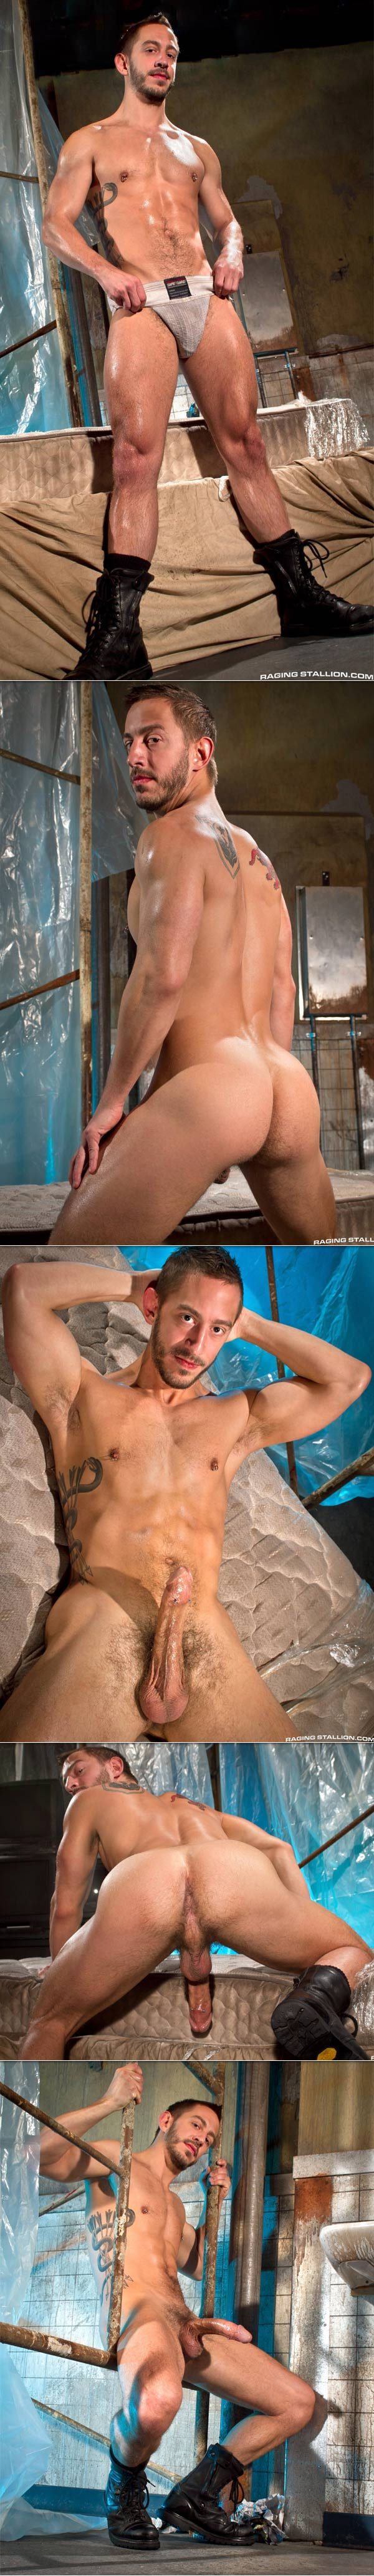 Hole 2 (Luke Milan & Bryan Cole) at Raging Stallion